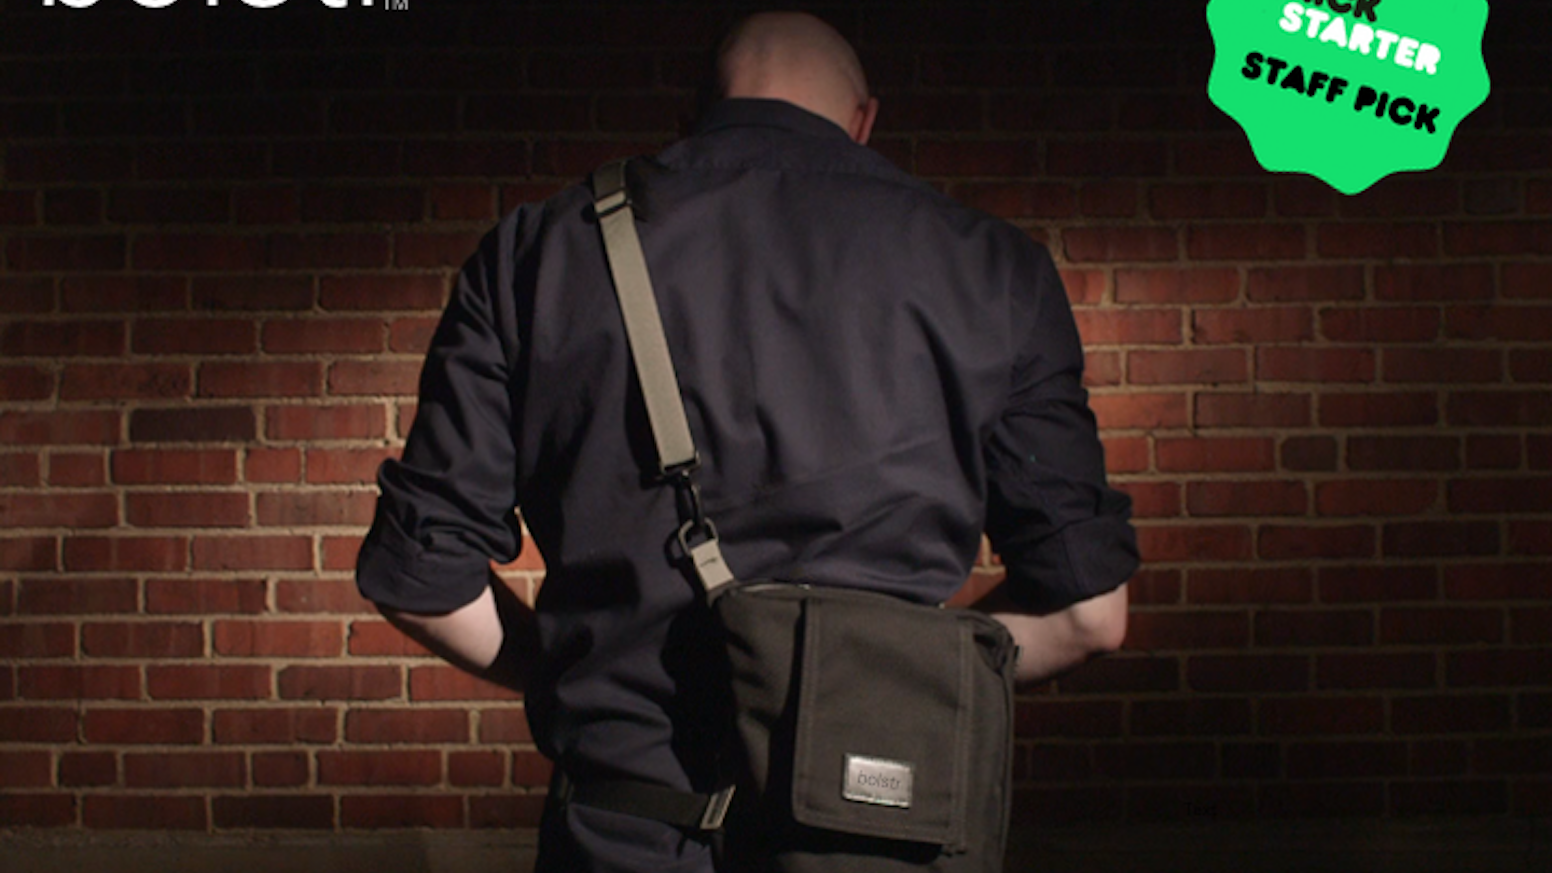 Need a few extra pockets? Bolstr is the perfect crossbody bag for guys and their smart phones, keys, wallets, sunglasses, and just a few more items. One of a kind and well reviewed by backers and customers.